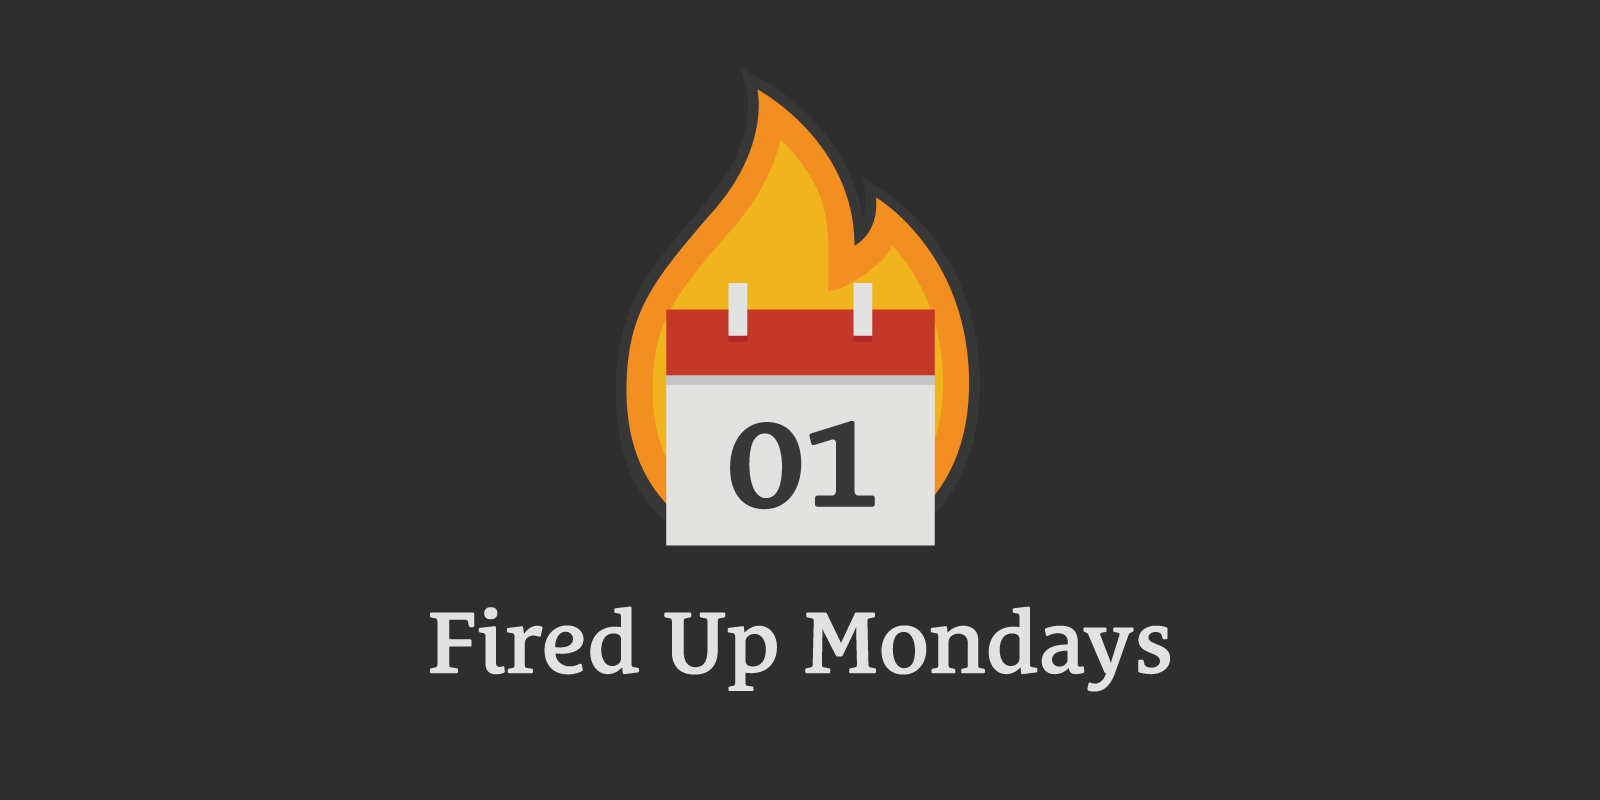 Fired Up Mondays